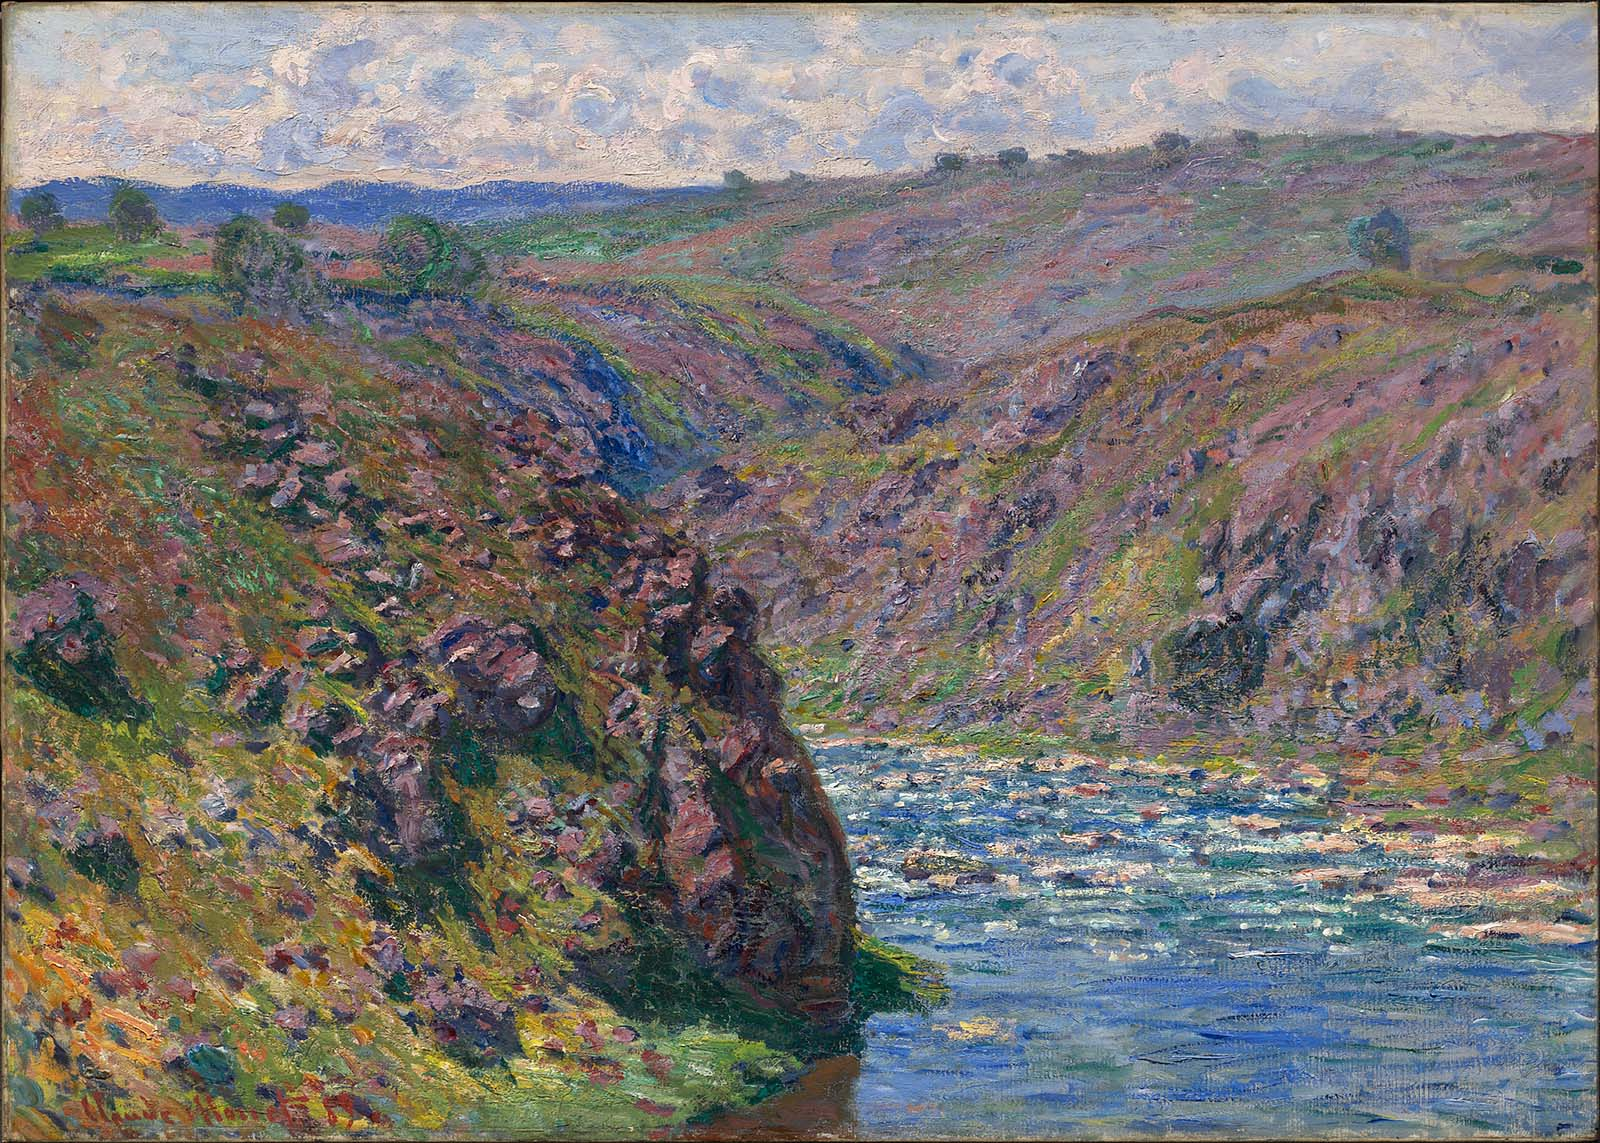 Claude Monet, picture Valley of the Creuse, Sunlight Effect 1889 |  ArtsViewer.com